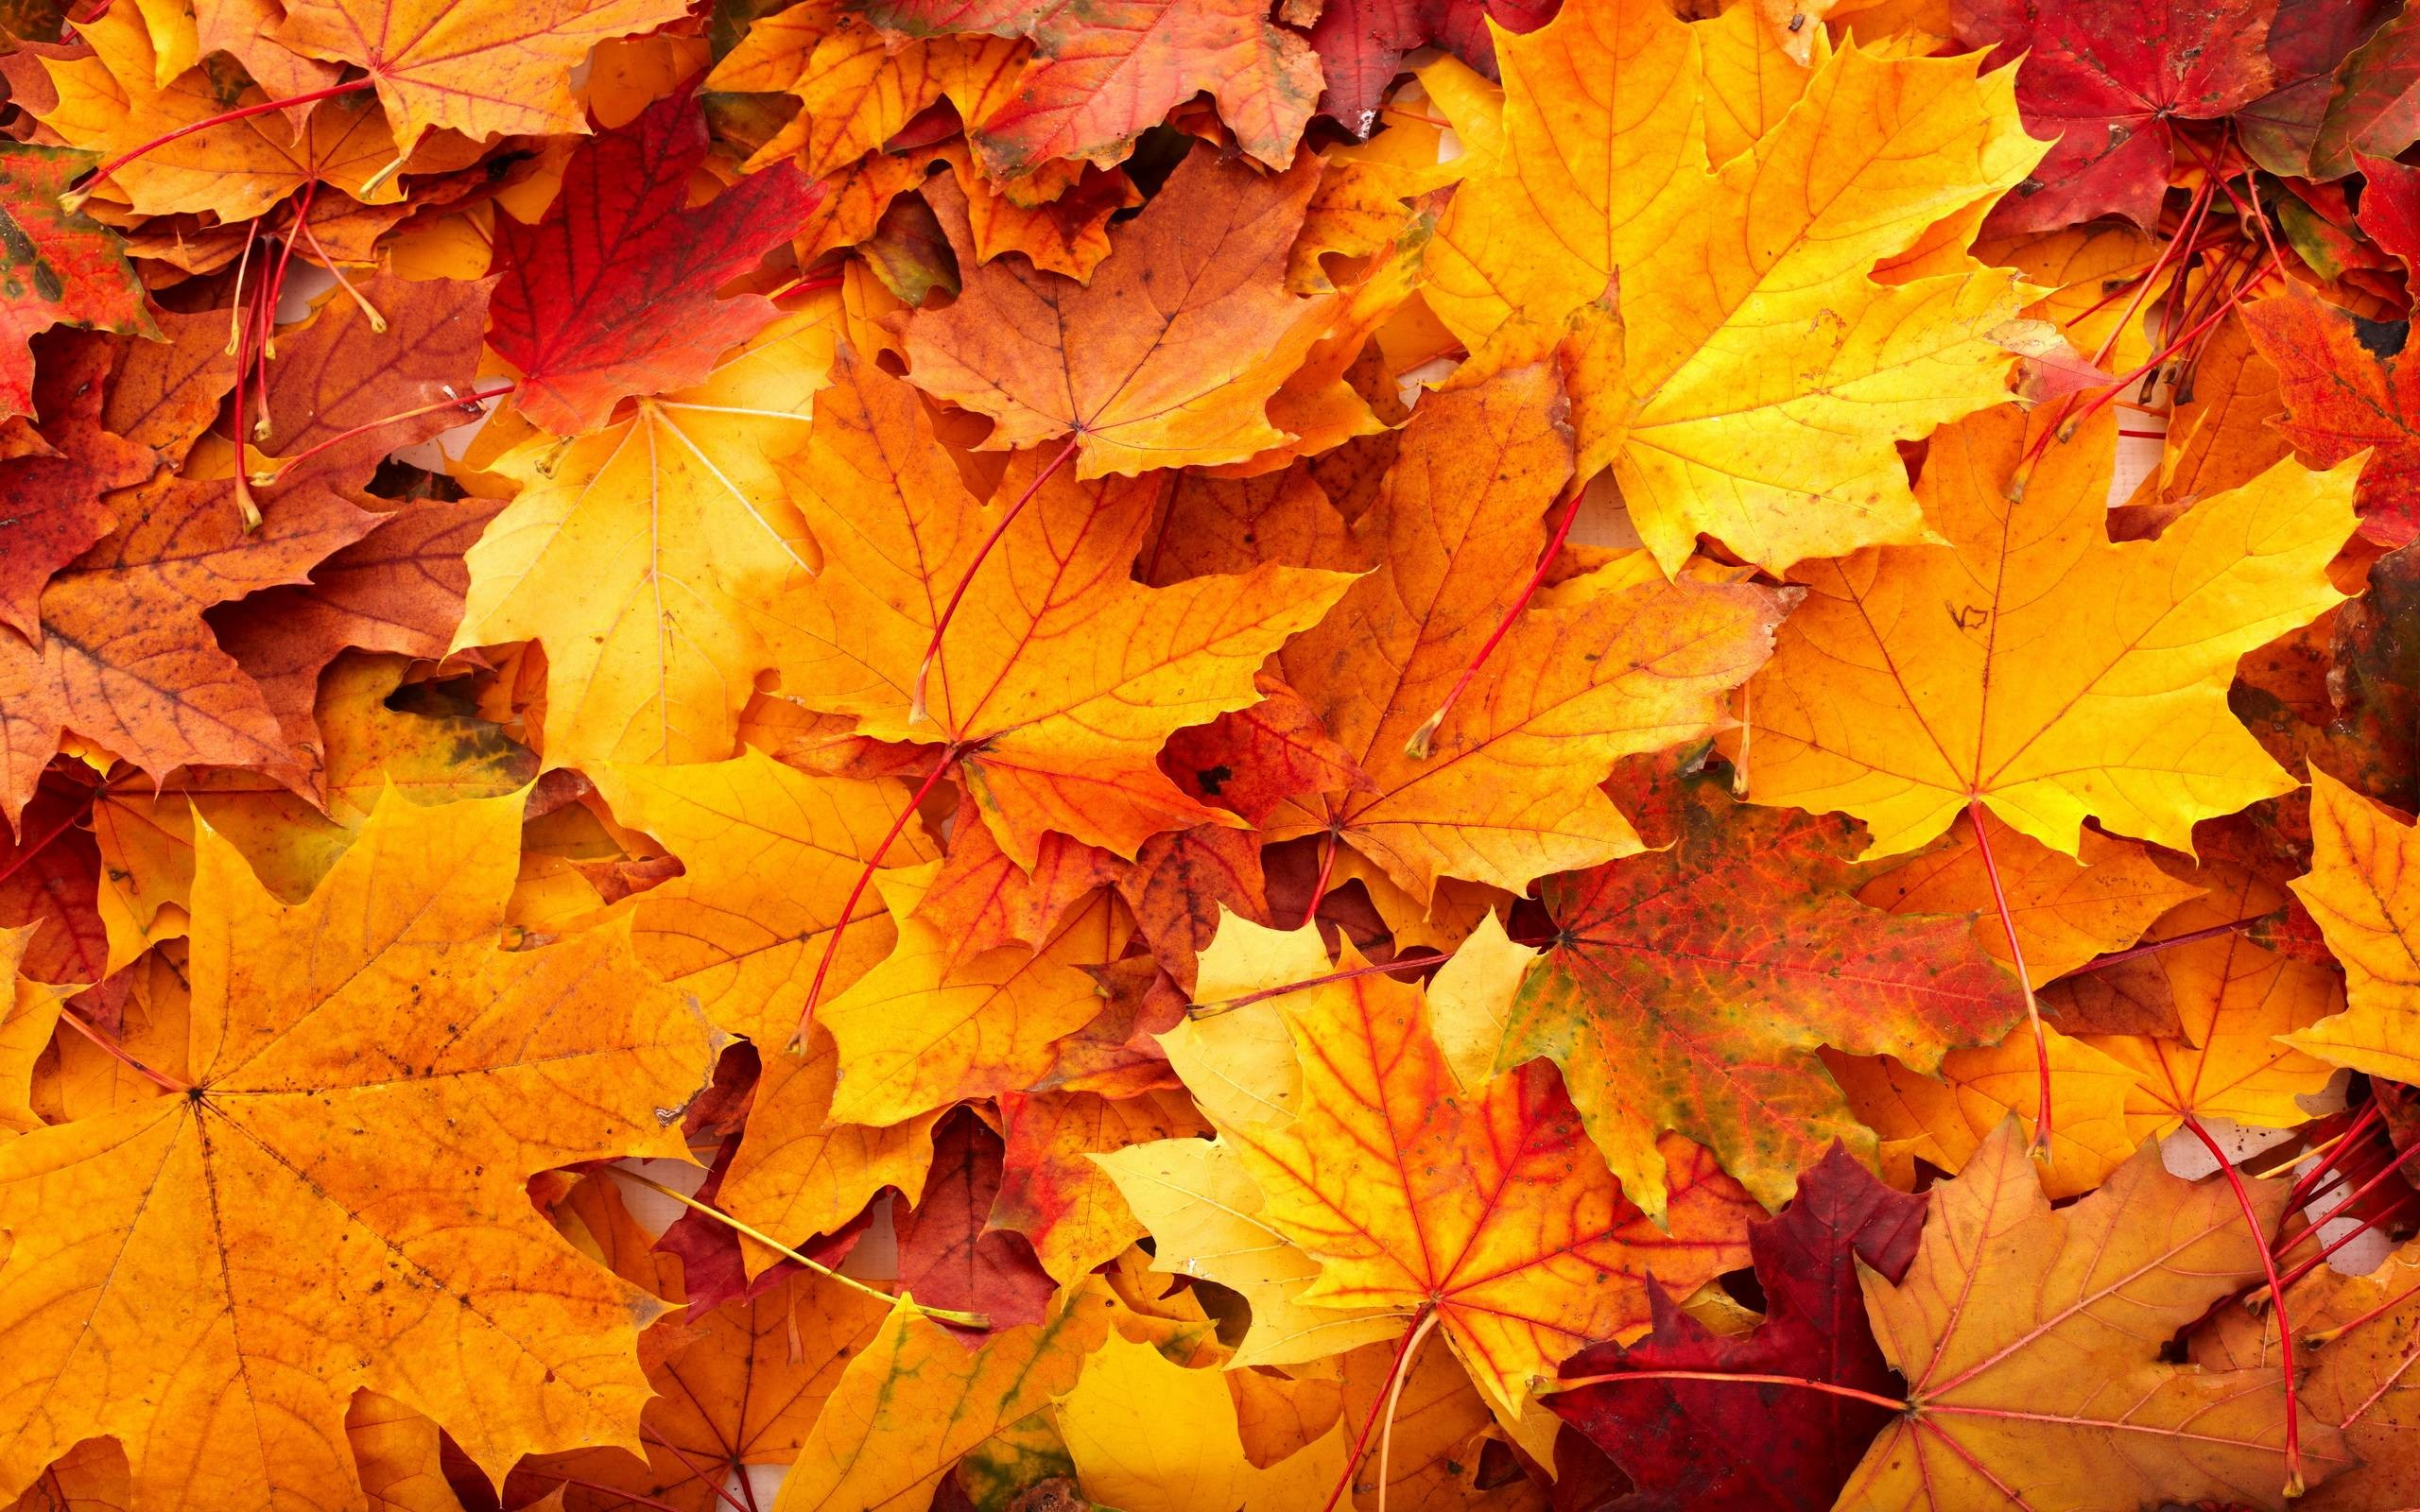 2560x1600 fall-leaves-background-20807-21344-hd-wallpapers - Athens